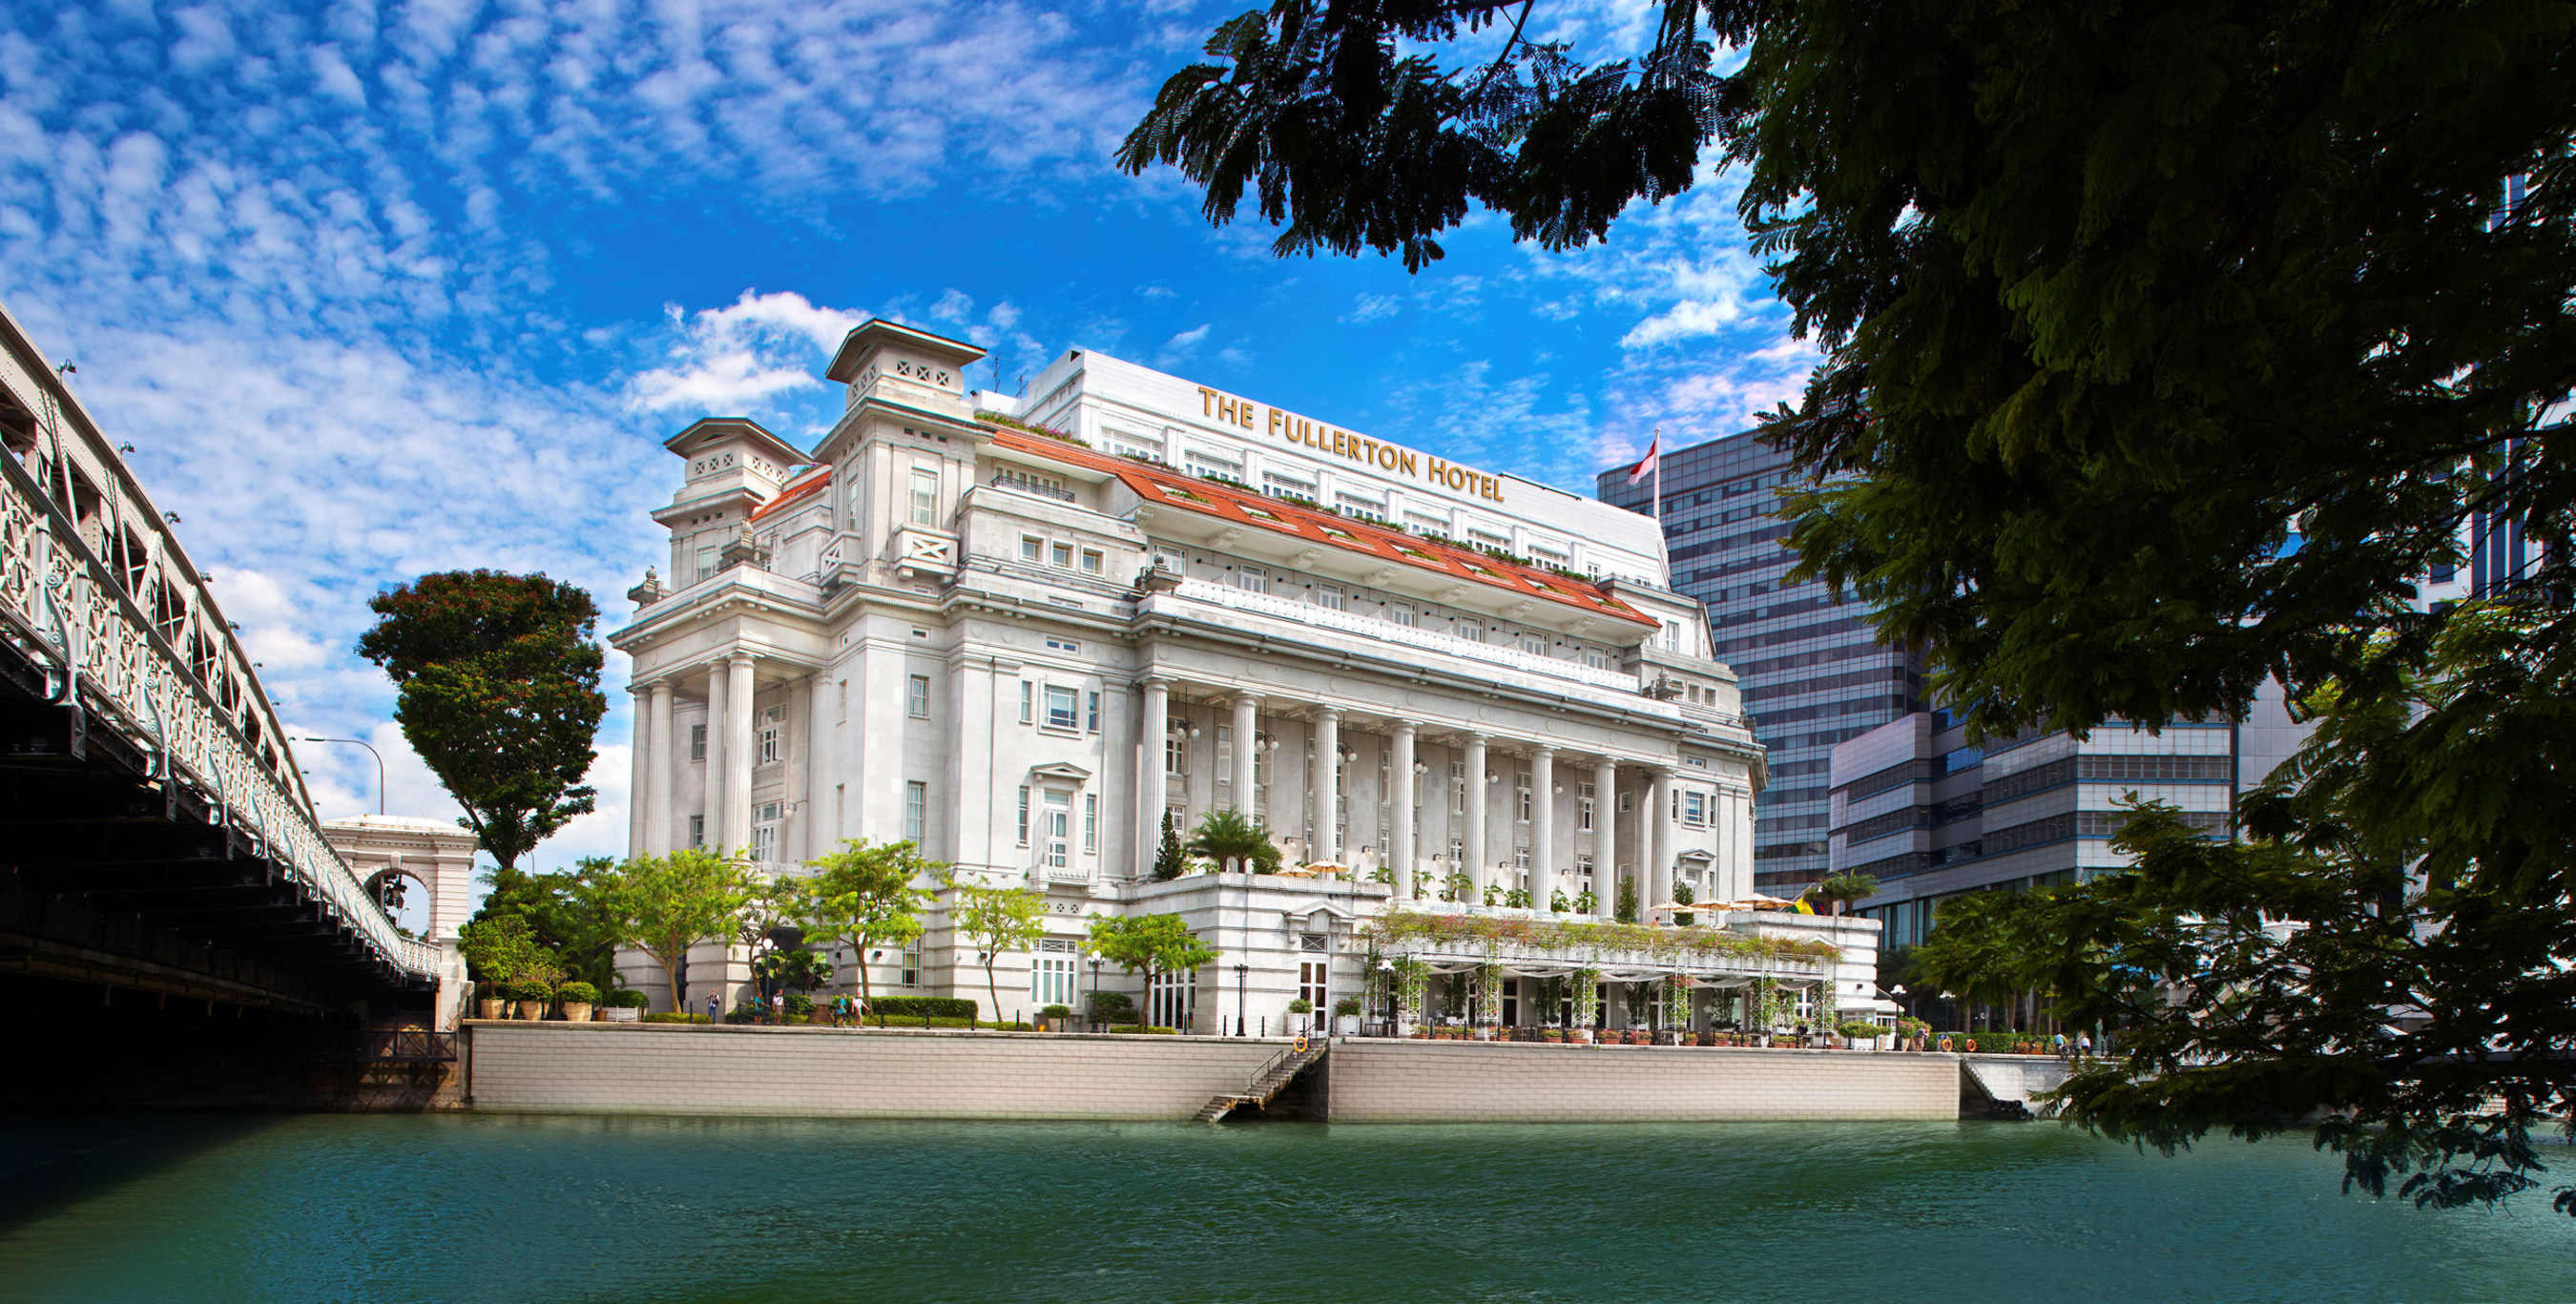 Image courtesy of The Fullerton Hotel